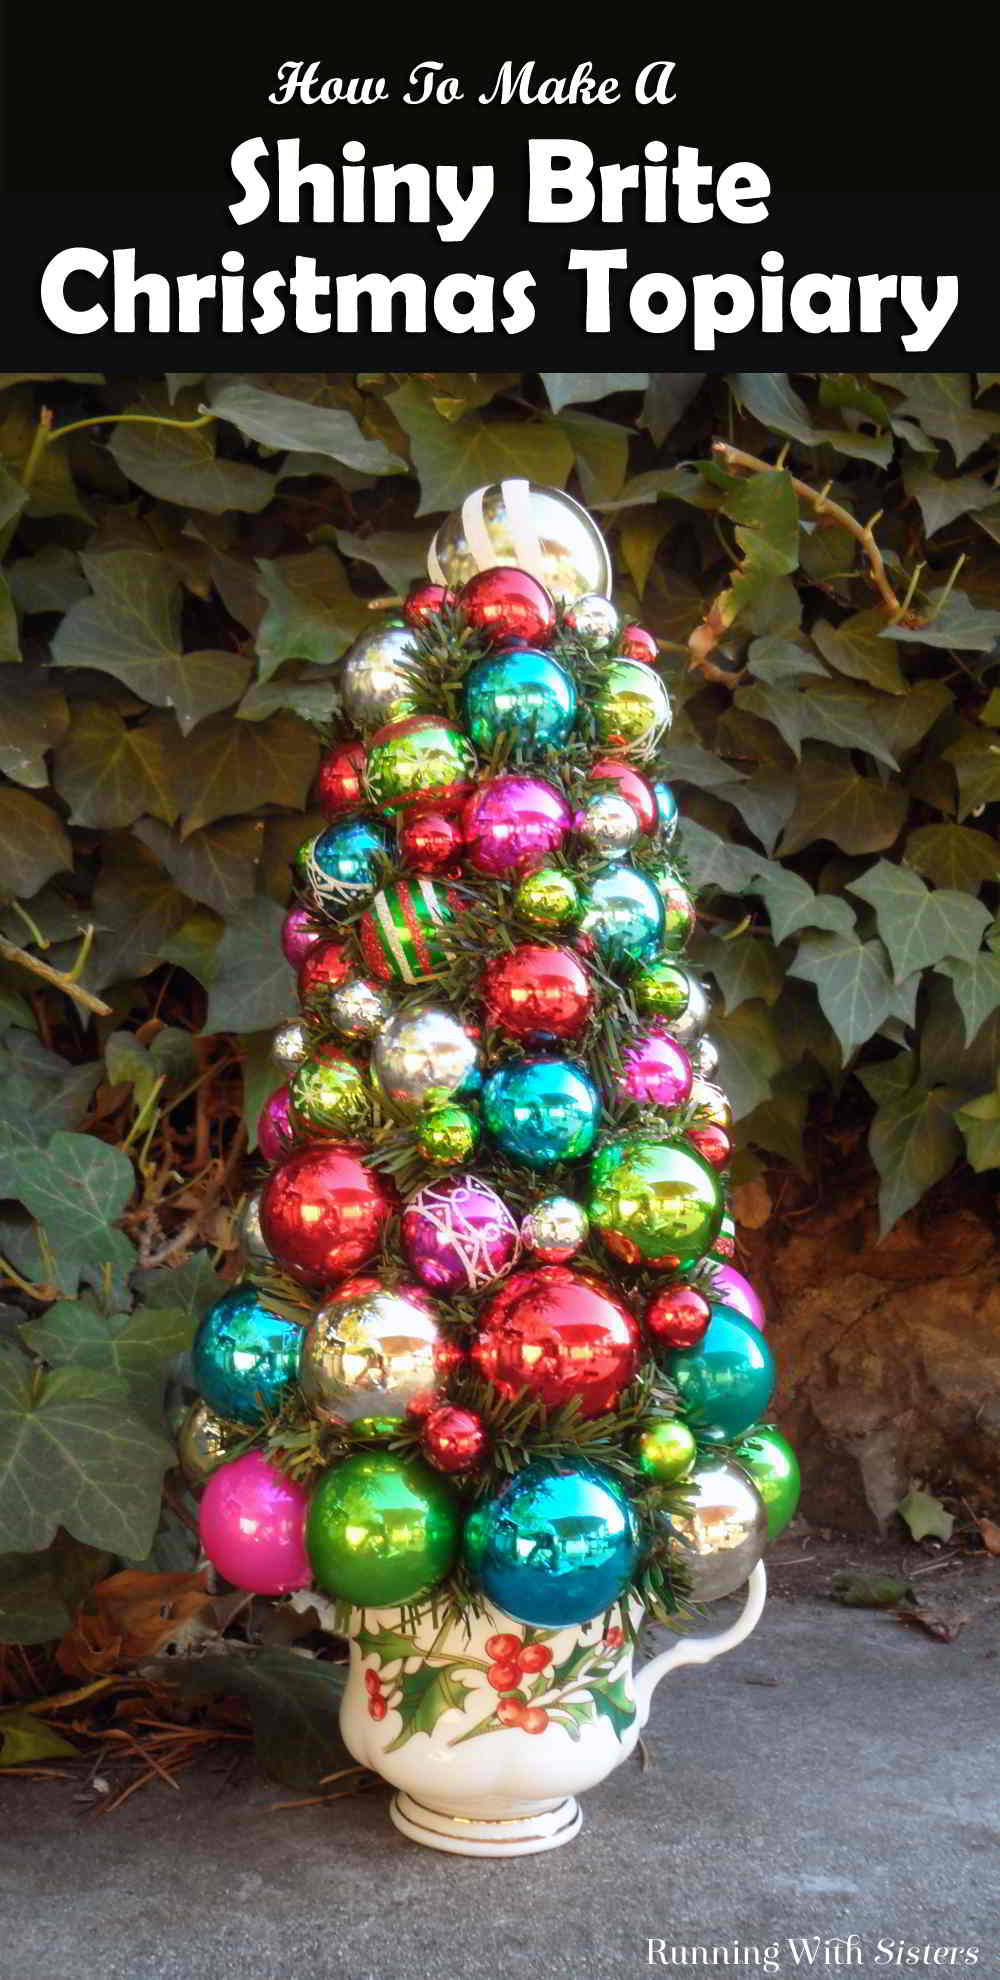 Christmas Topiary.Shiny And Bright Christmas Teacup Topiary Running With